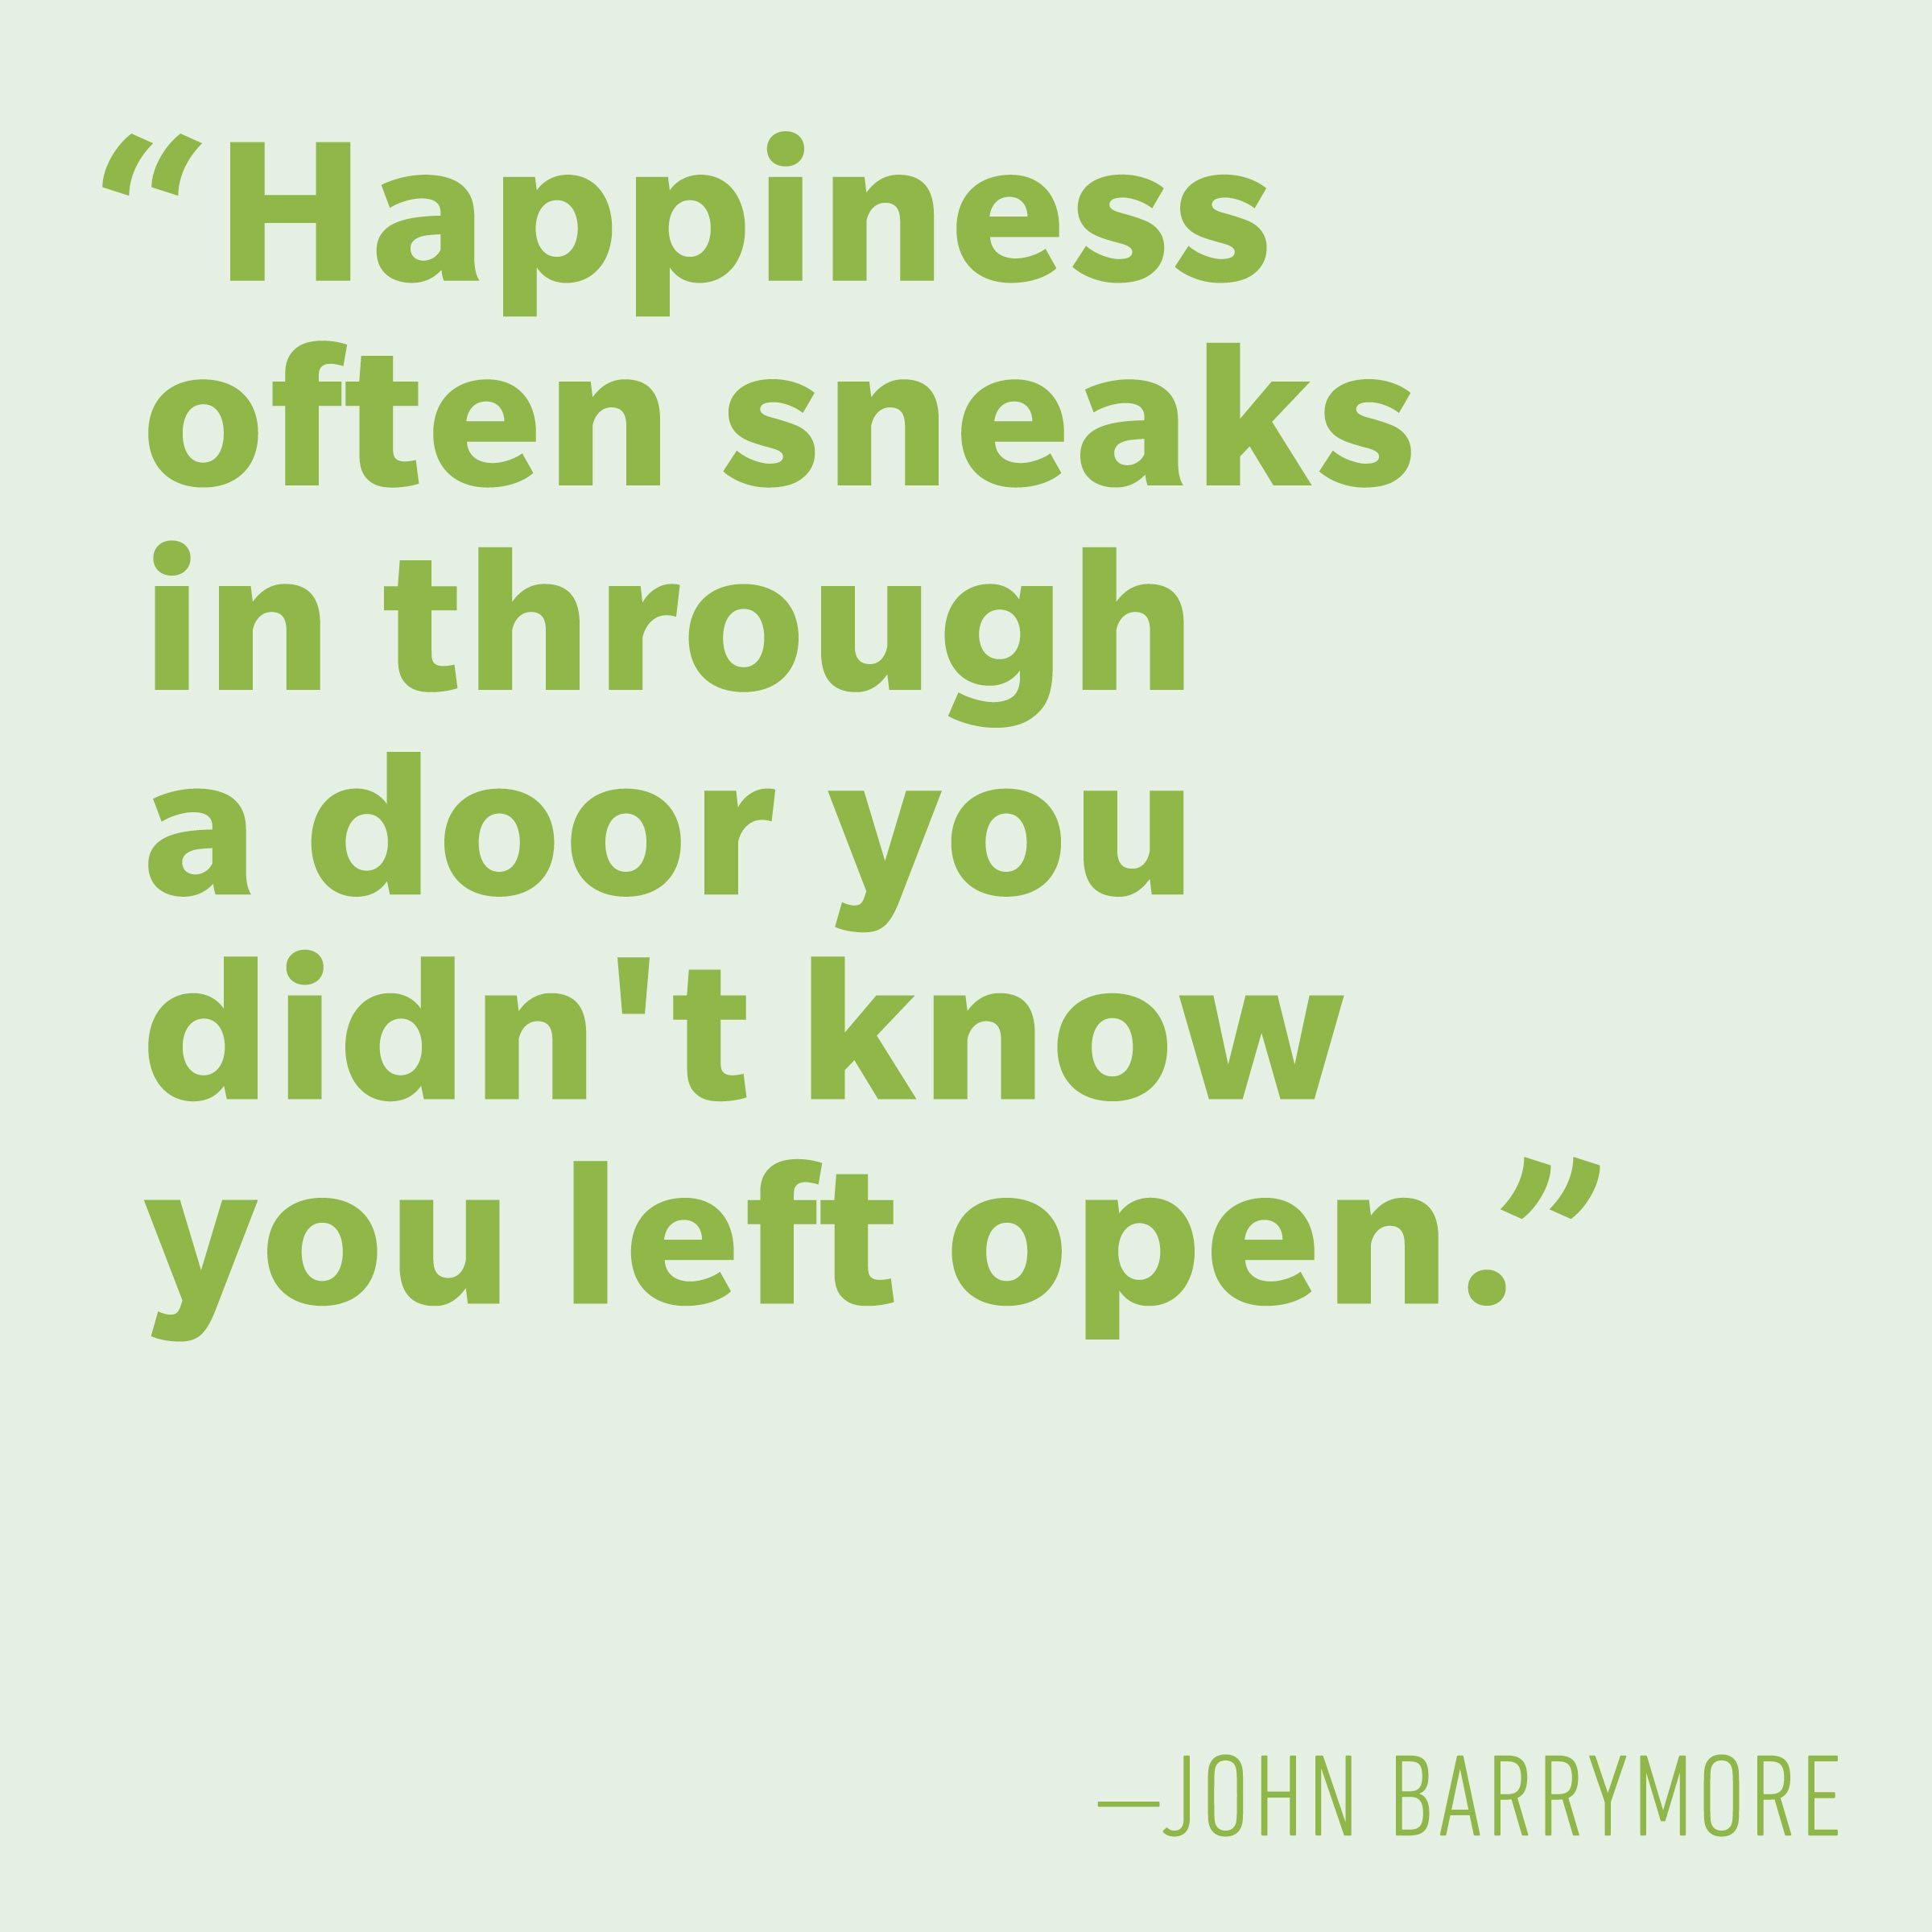 Motivational quotes - John Barrymore